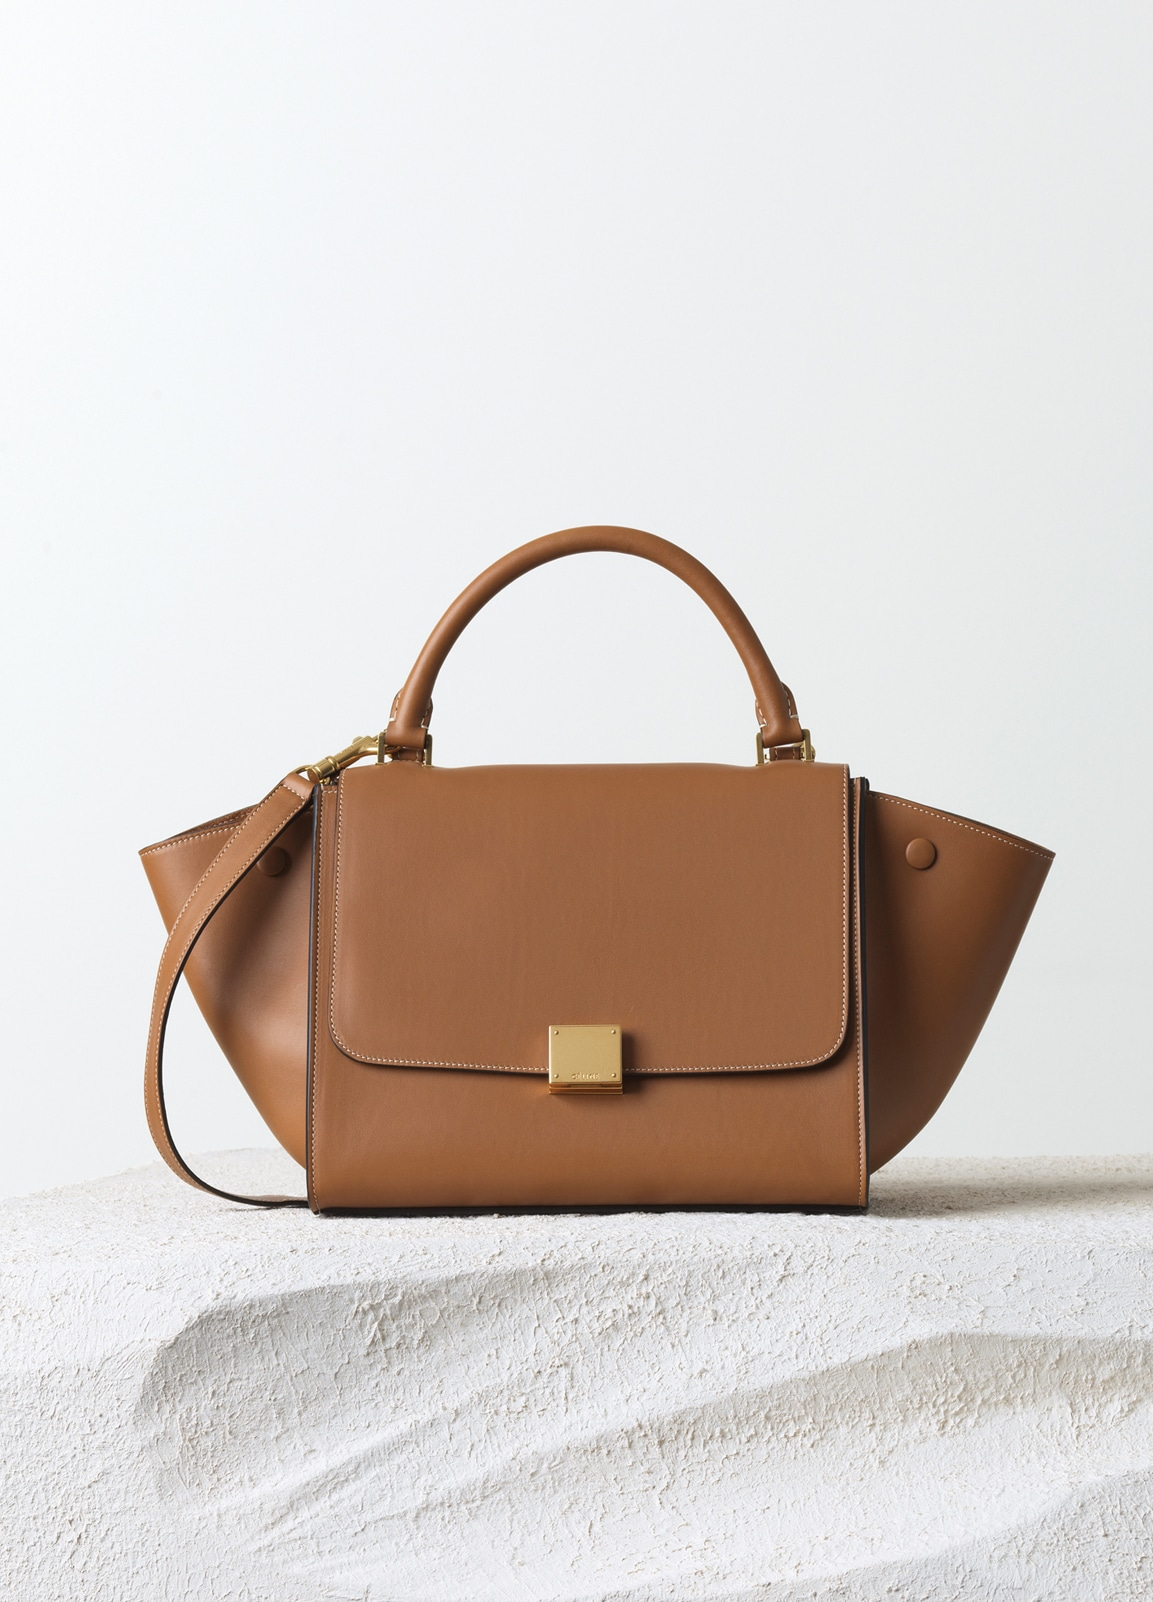 how much is the new celine bag - Celine Trapeze Tote Bag Reference Guide | Spotted Fashion